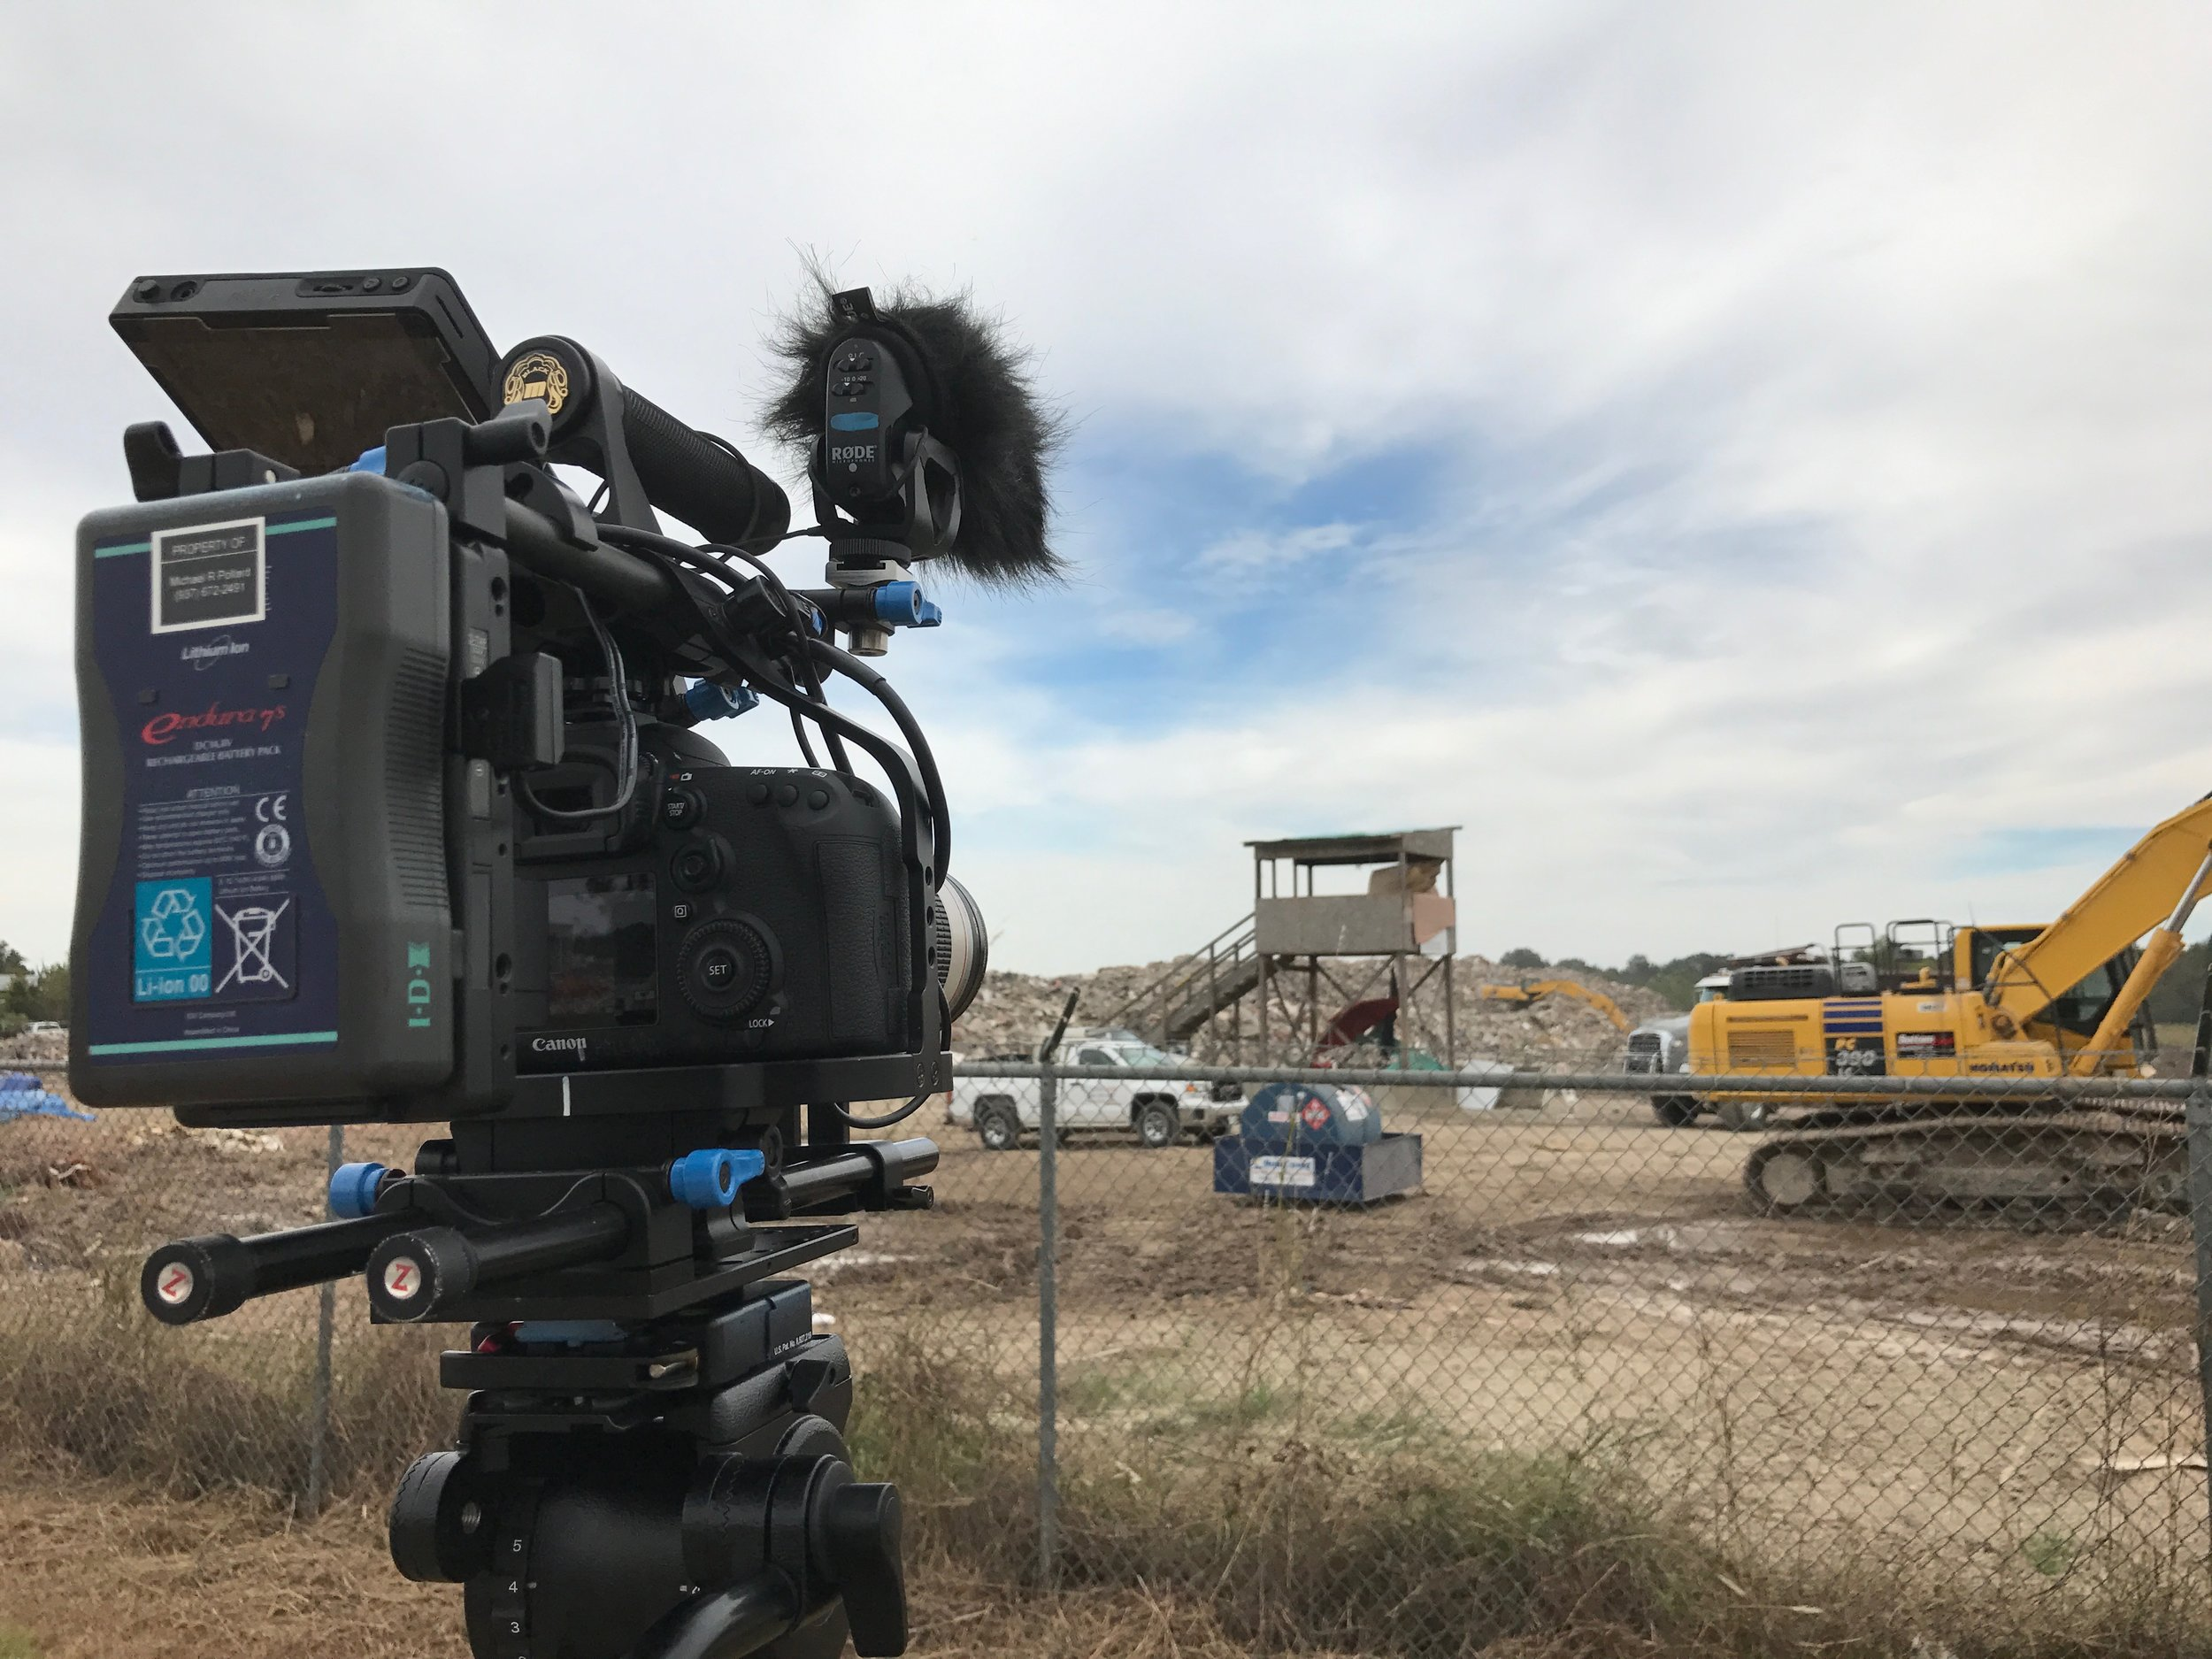 B-ROLL AT ONE OF THE TWO TEMPORARY DUMP SITES.